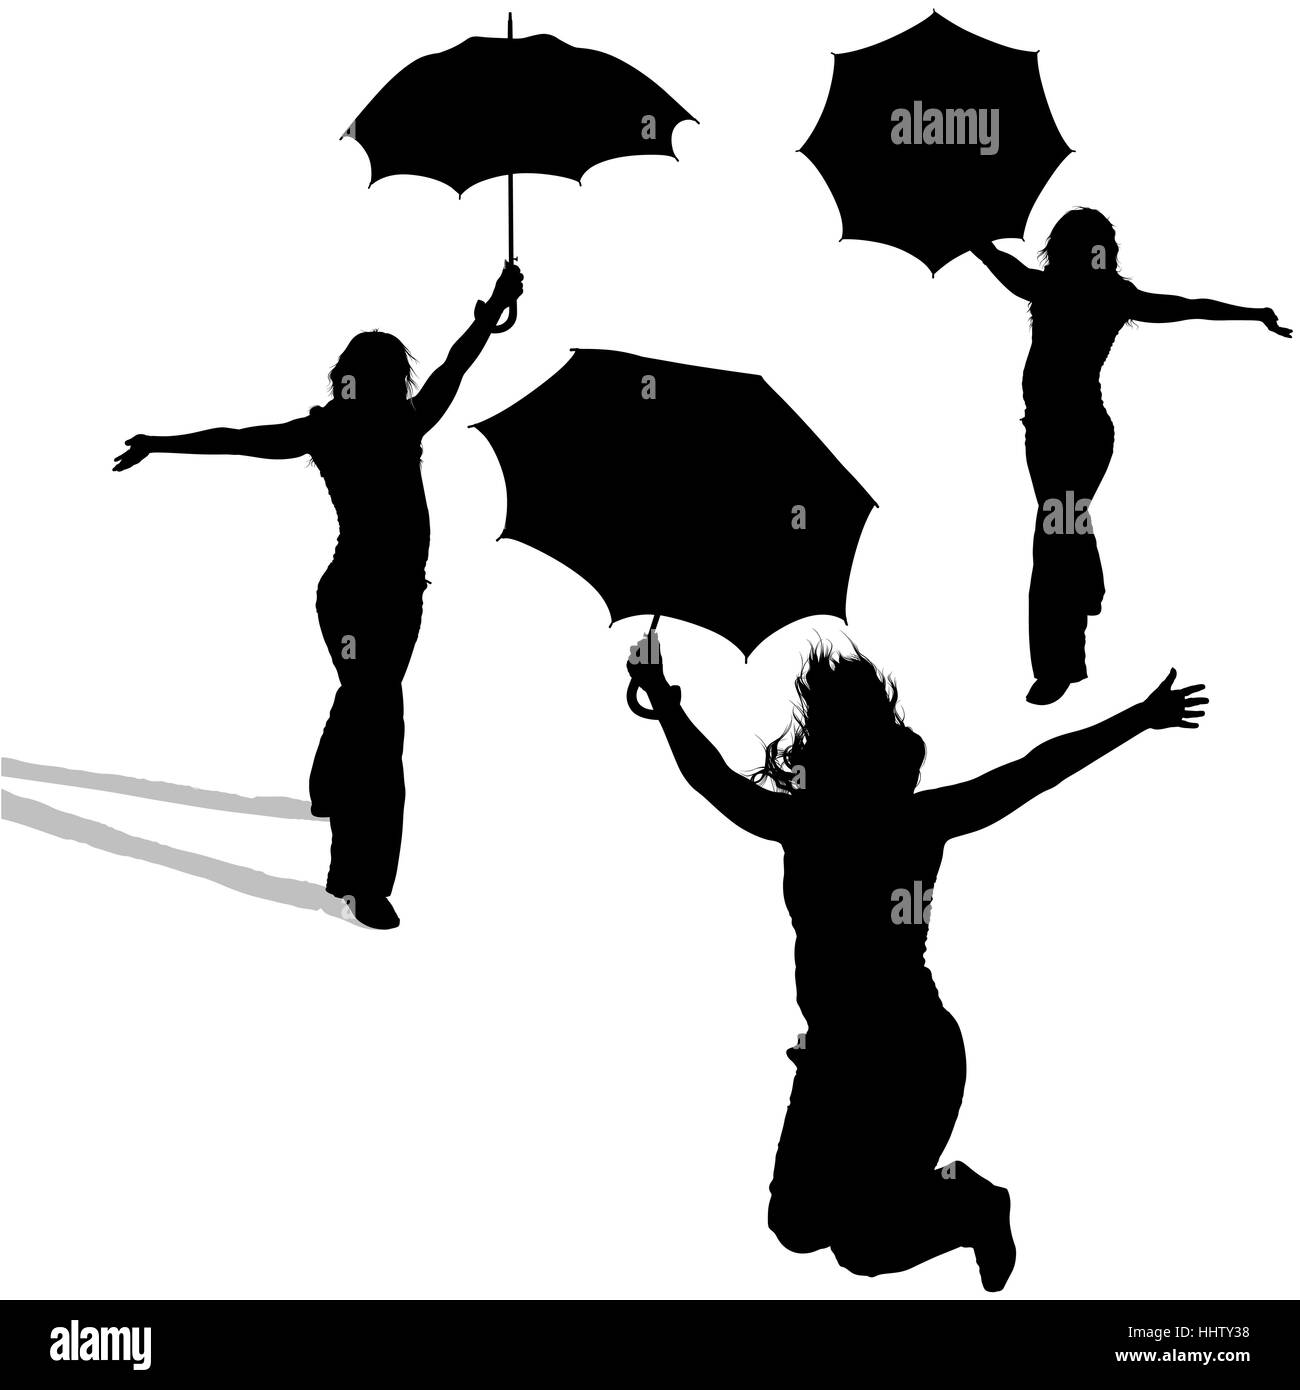 figure holding umbrella cut out stock images u0026 pictures alamy